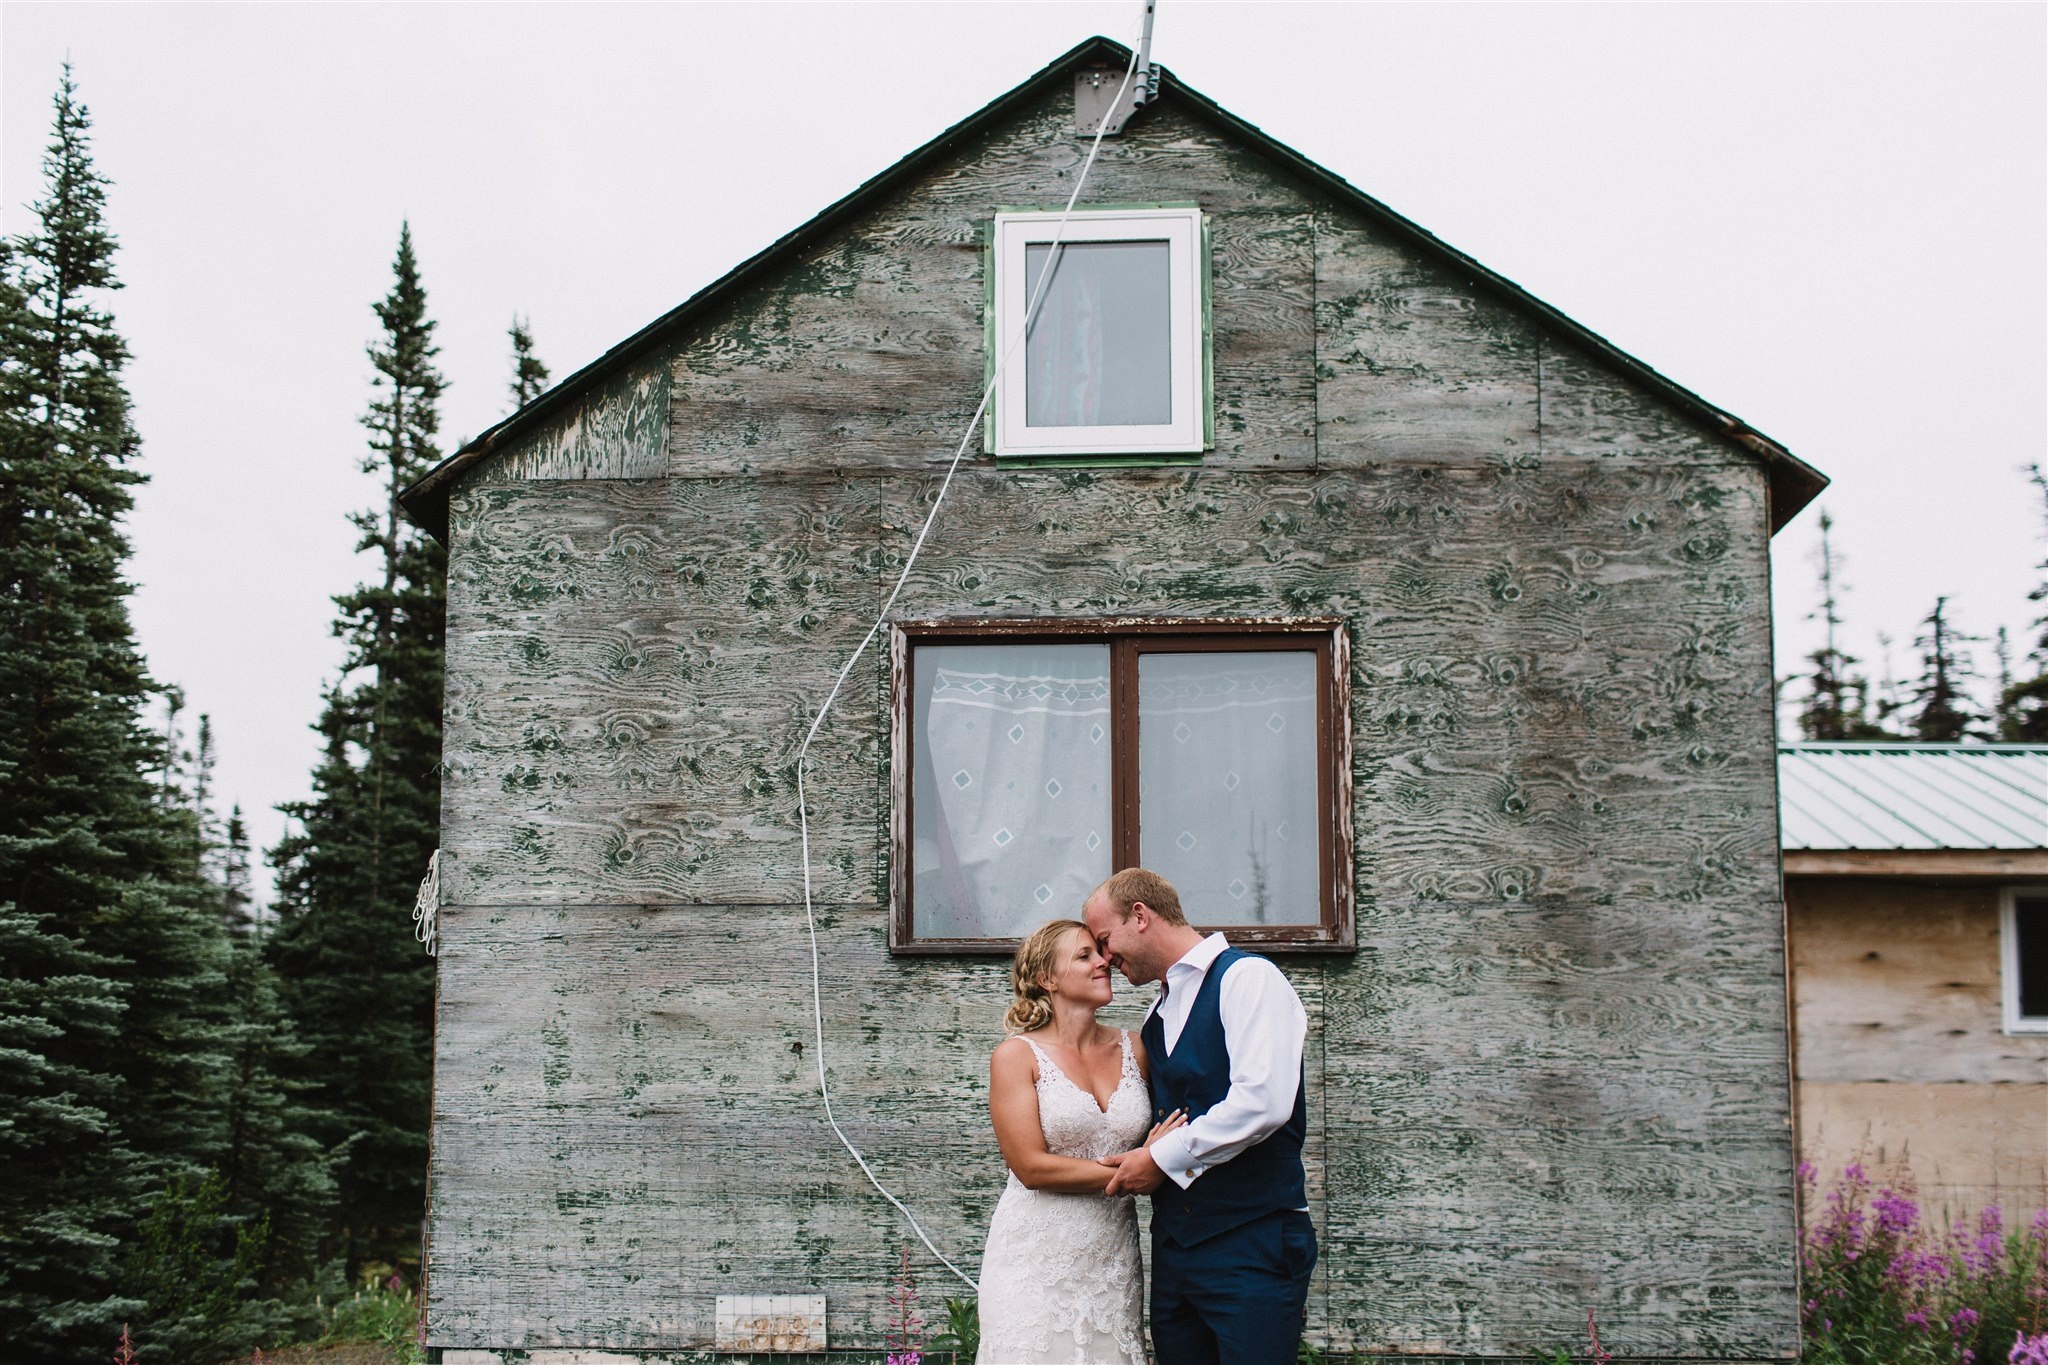 Mining shack wedding photography